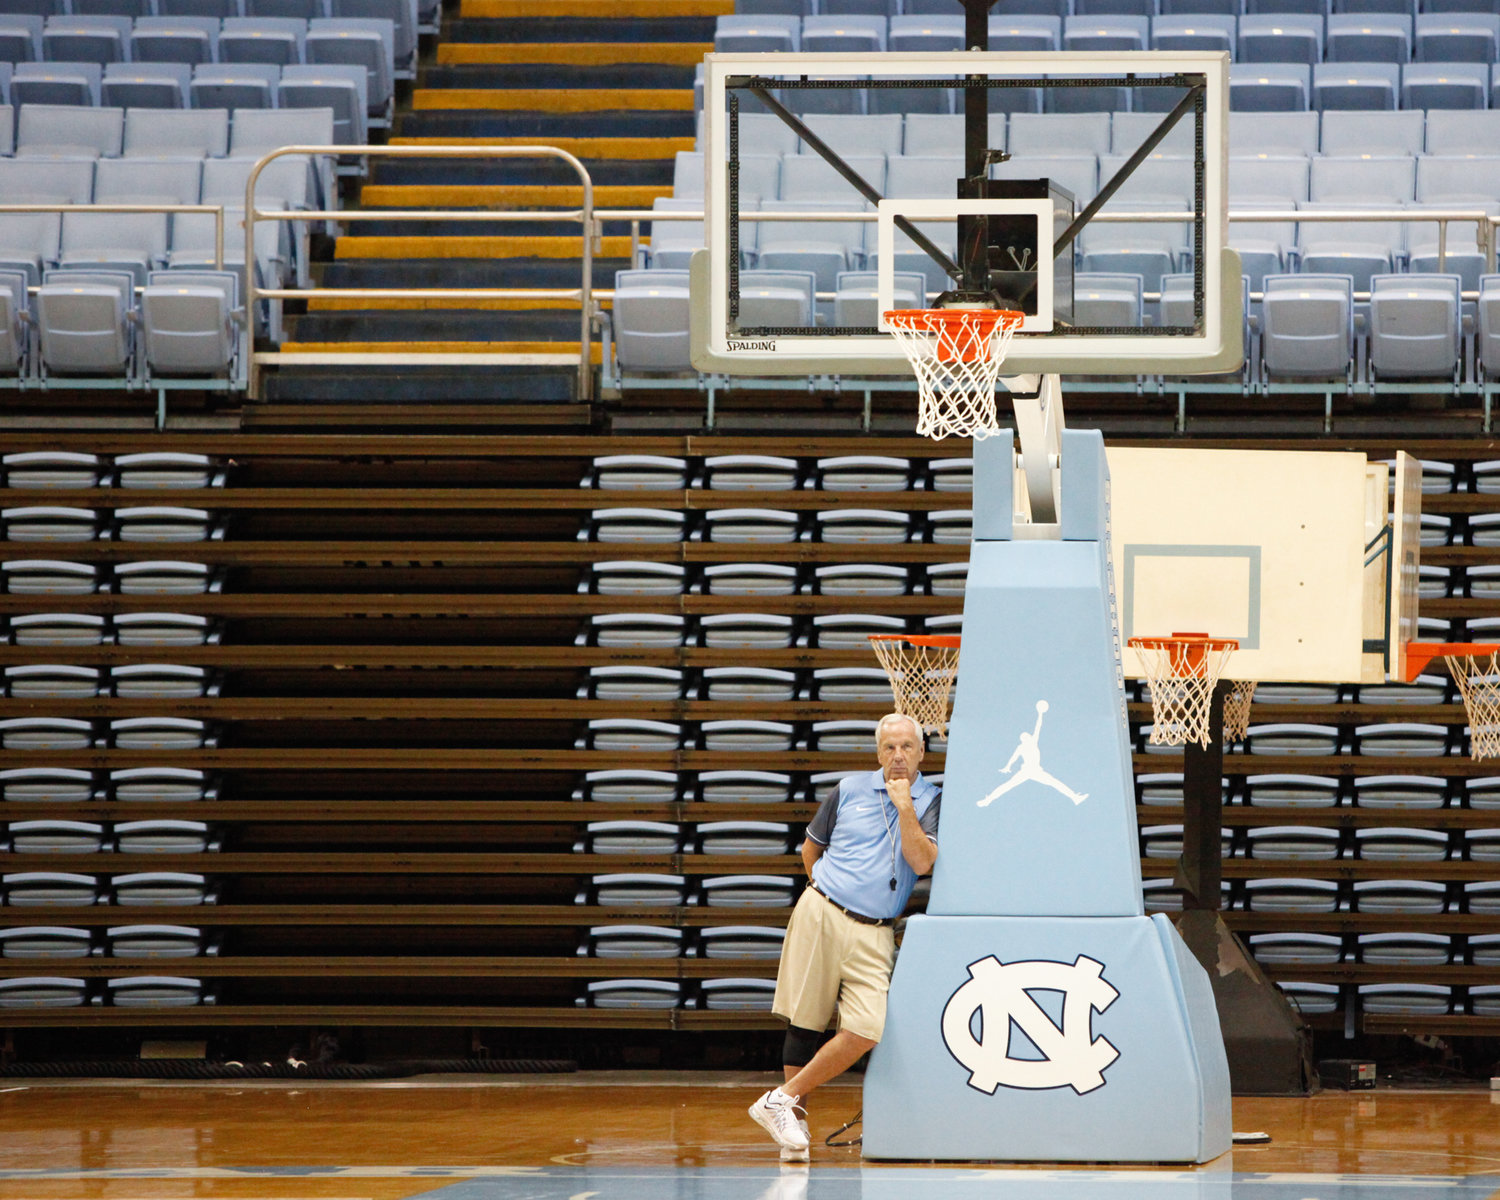 UNC Head Coach Roy Williams looks on at the first practice of the 2016-2017 basketball season.